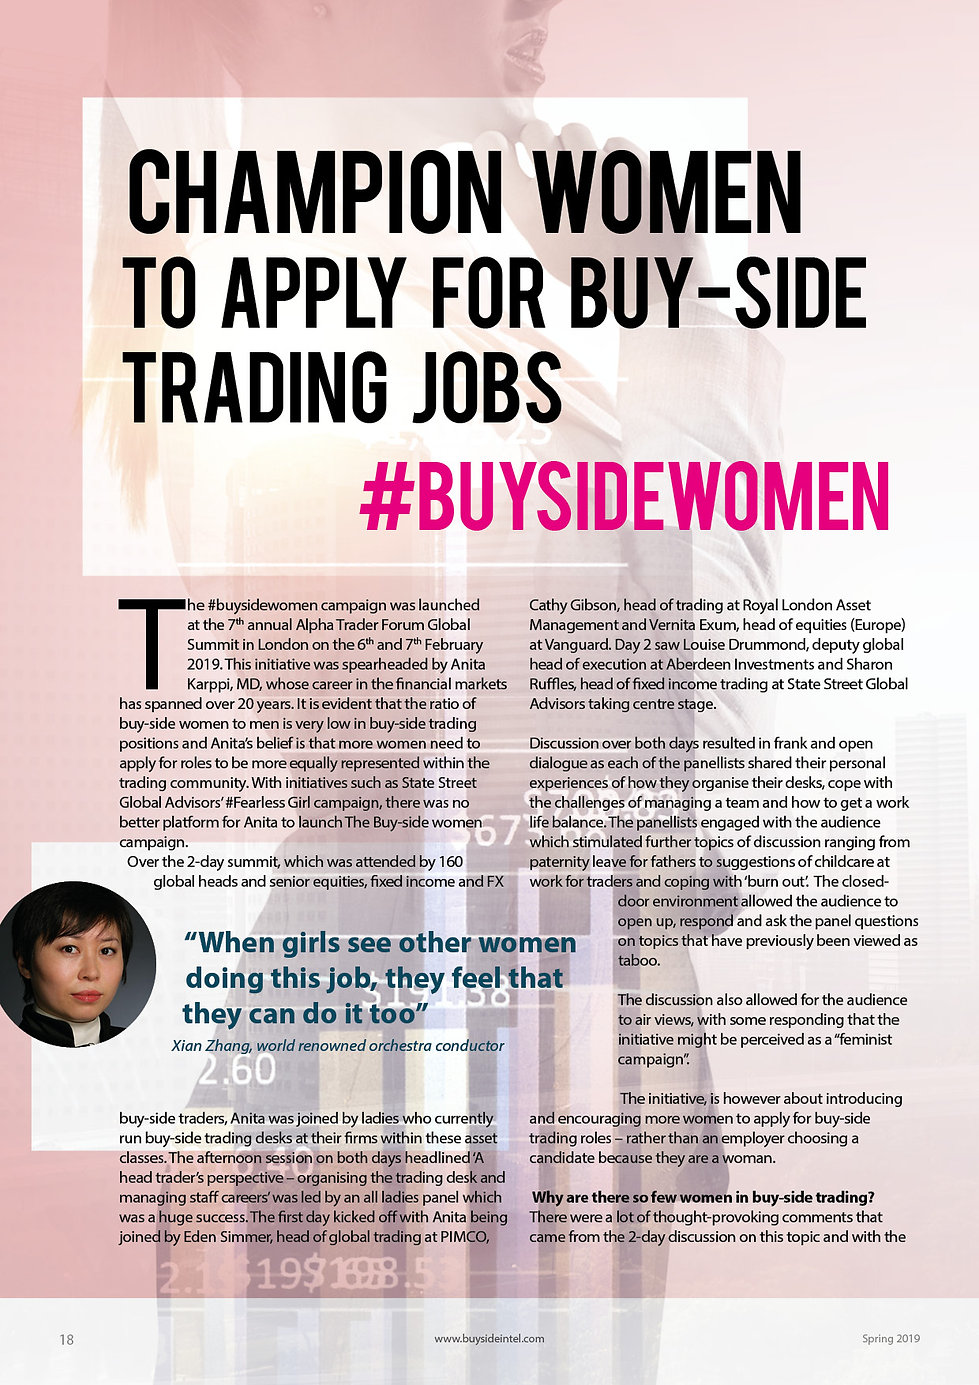 Champion women to apply for buy-side trading jobs